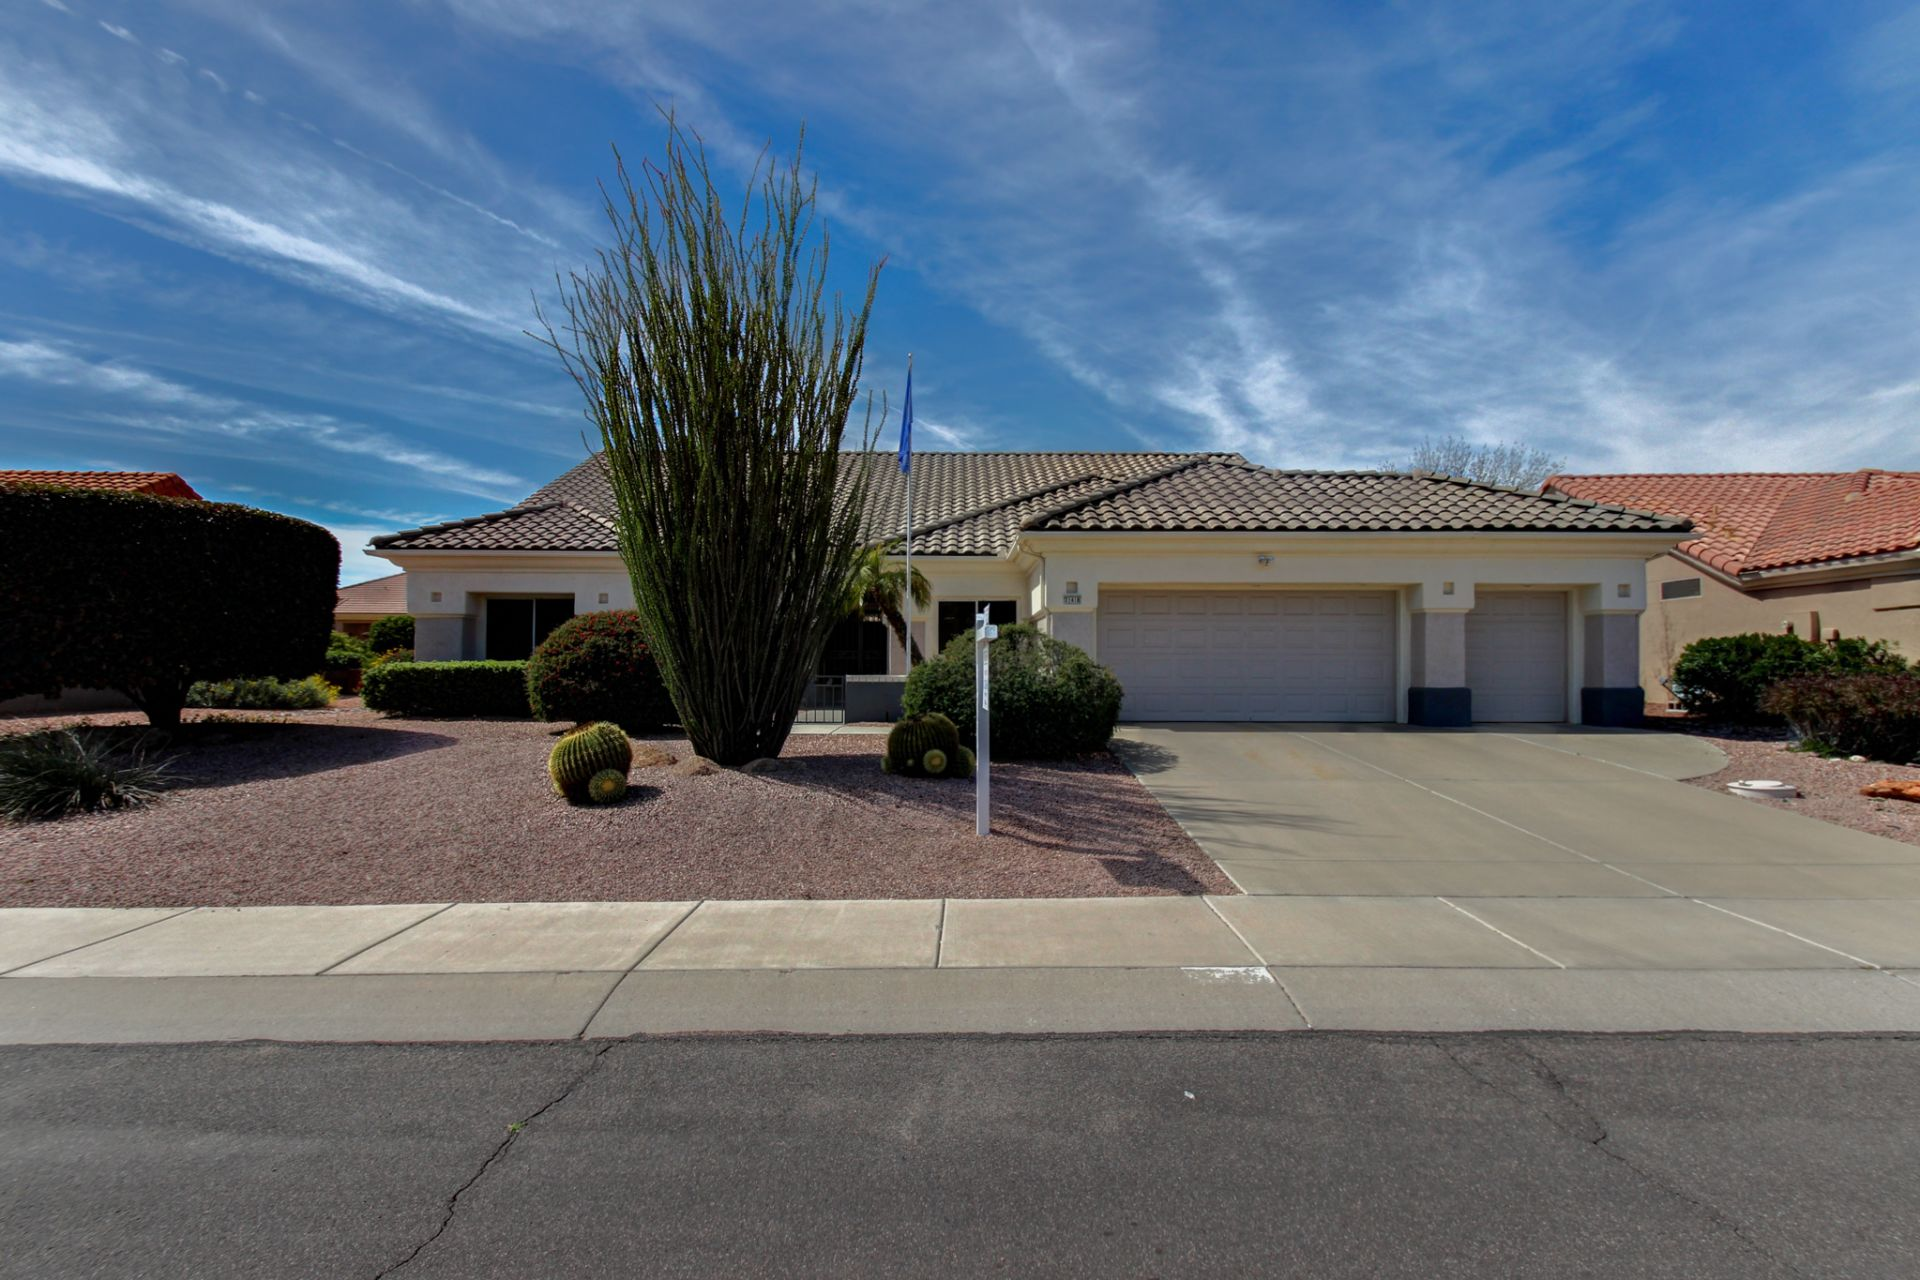 21418 N 157TH AVE, Sun City West, AZ 85375